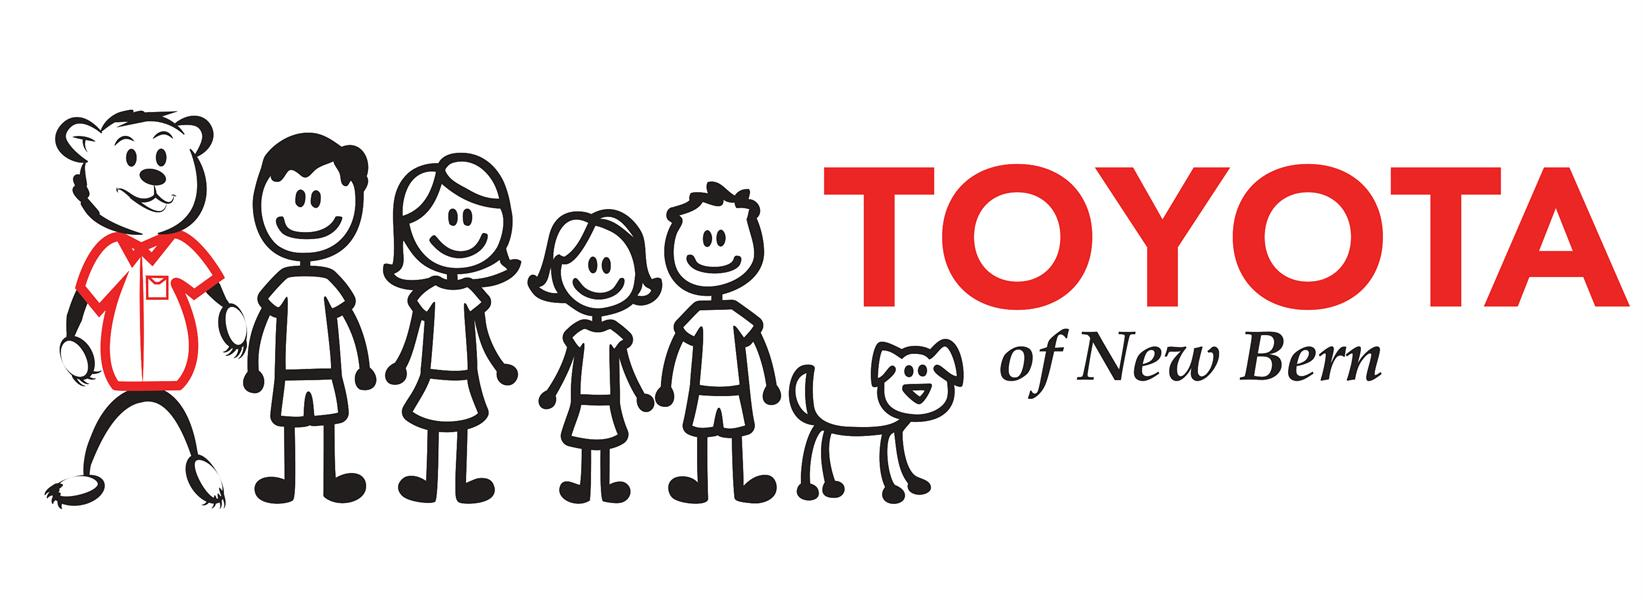 Toyota Of New Bern >> Toyota Of New Bern Automotive Dealers New Bern Area Chamber Of